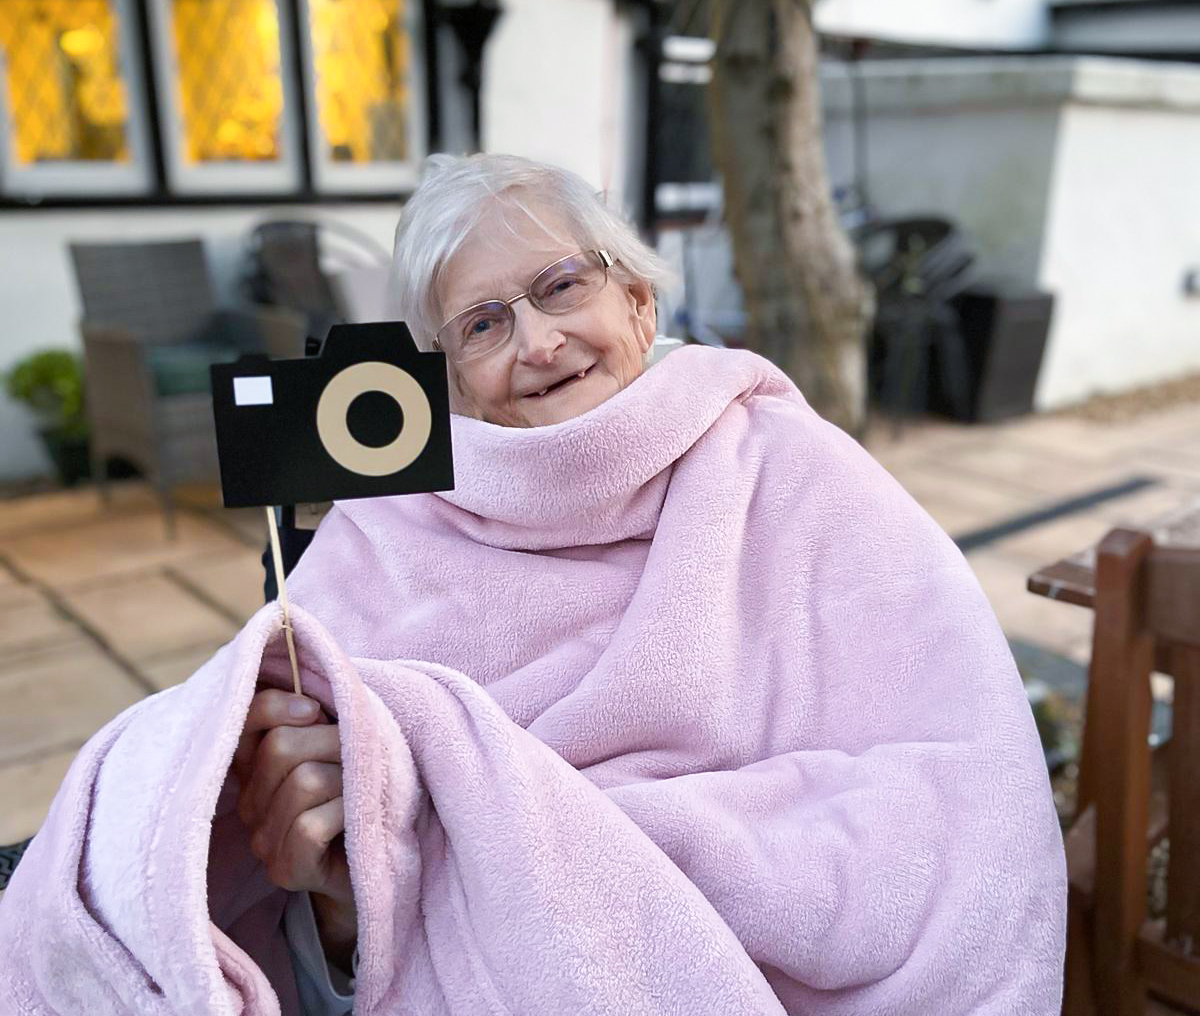 Luton care home resident enjoying the outdoor cinema experience